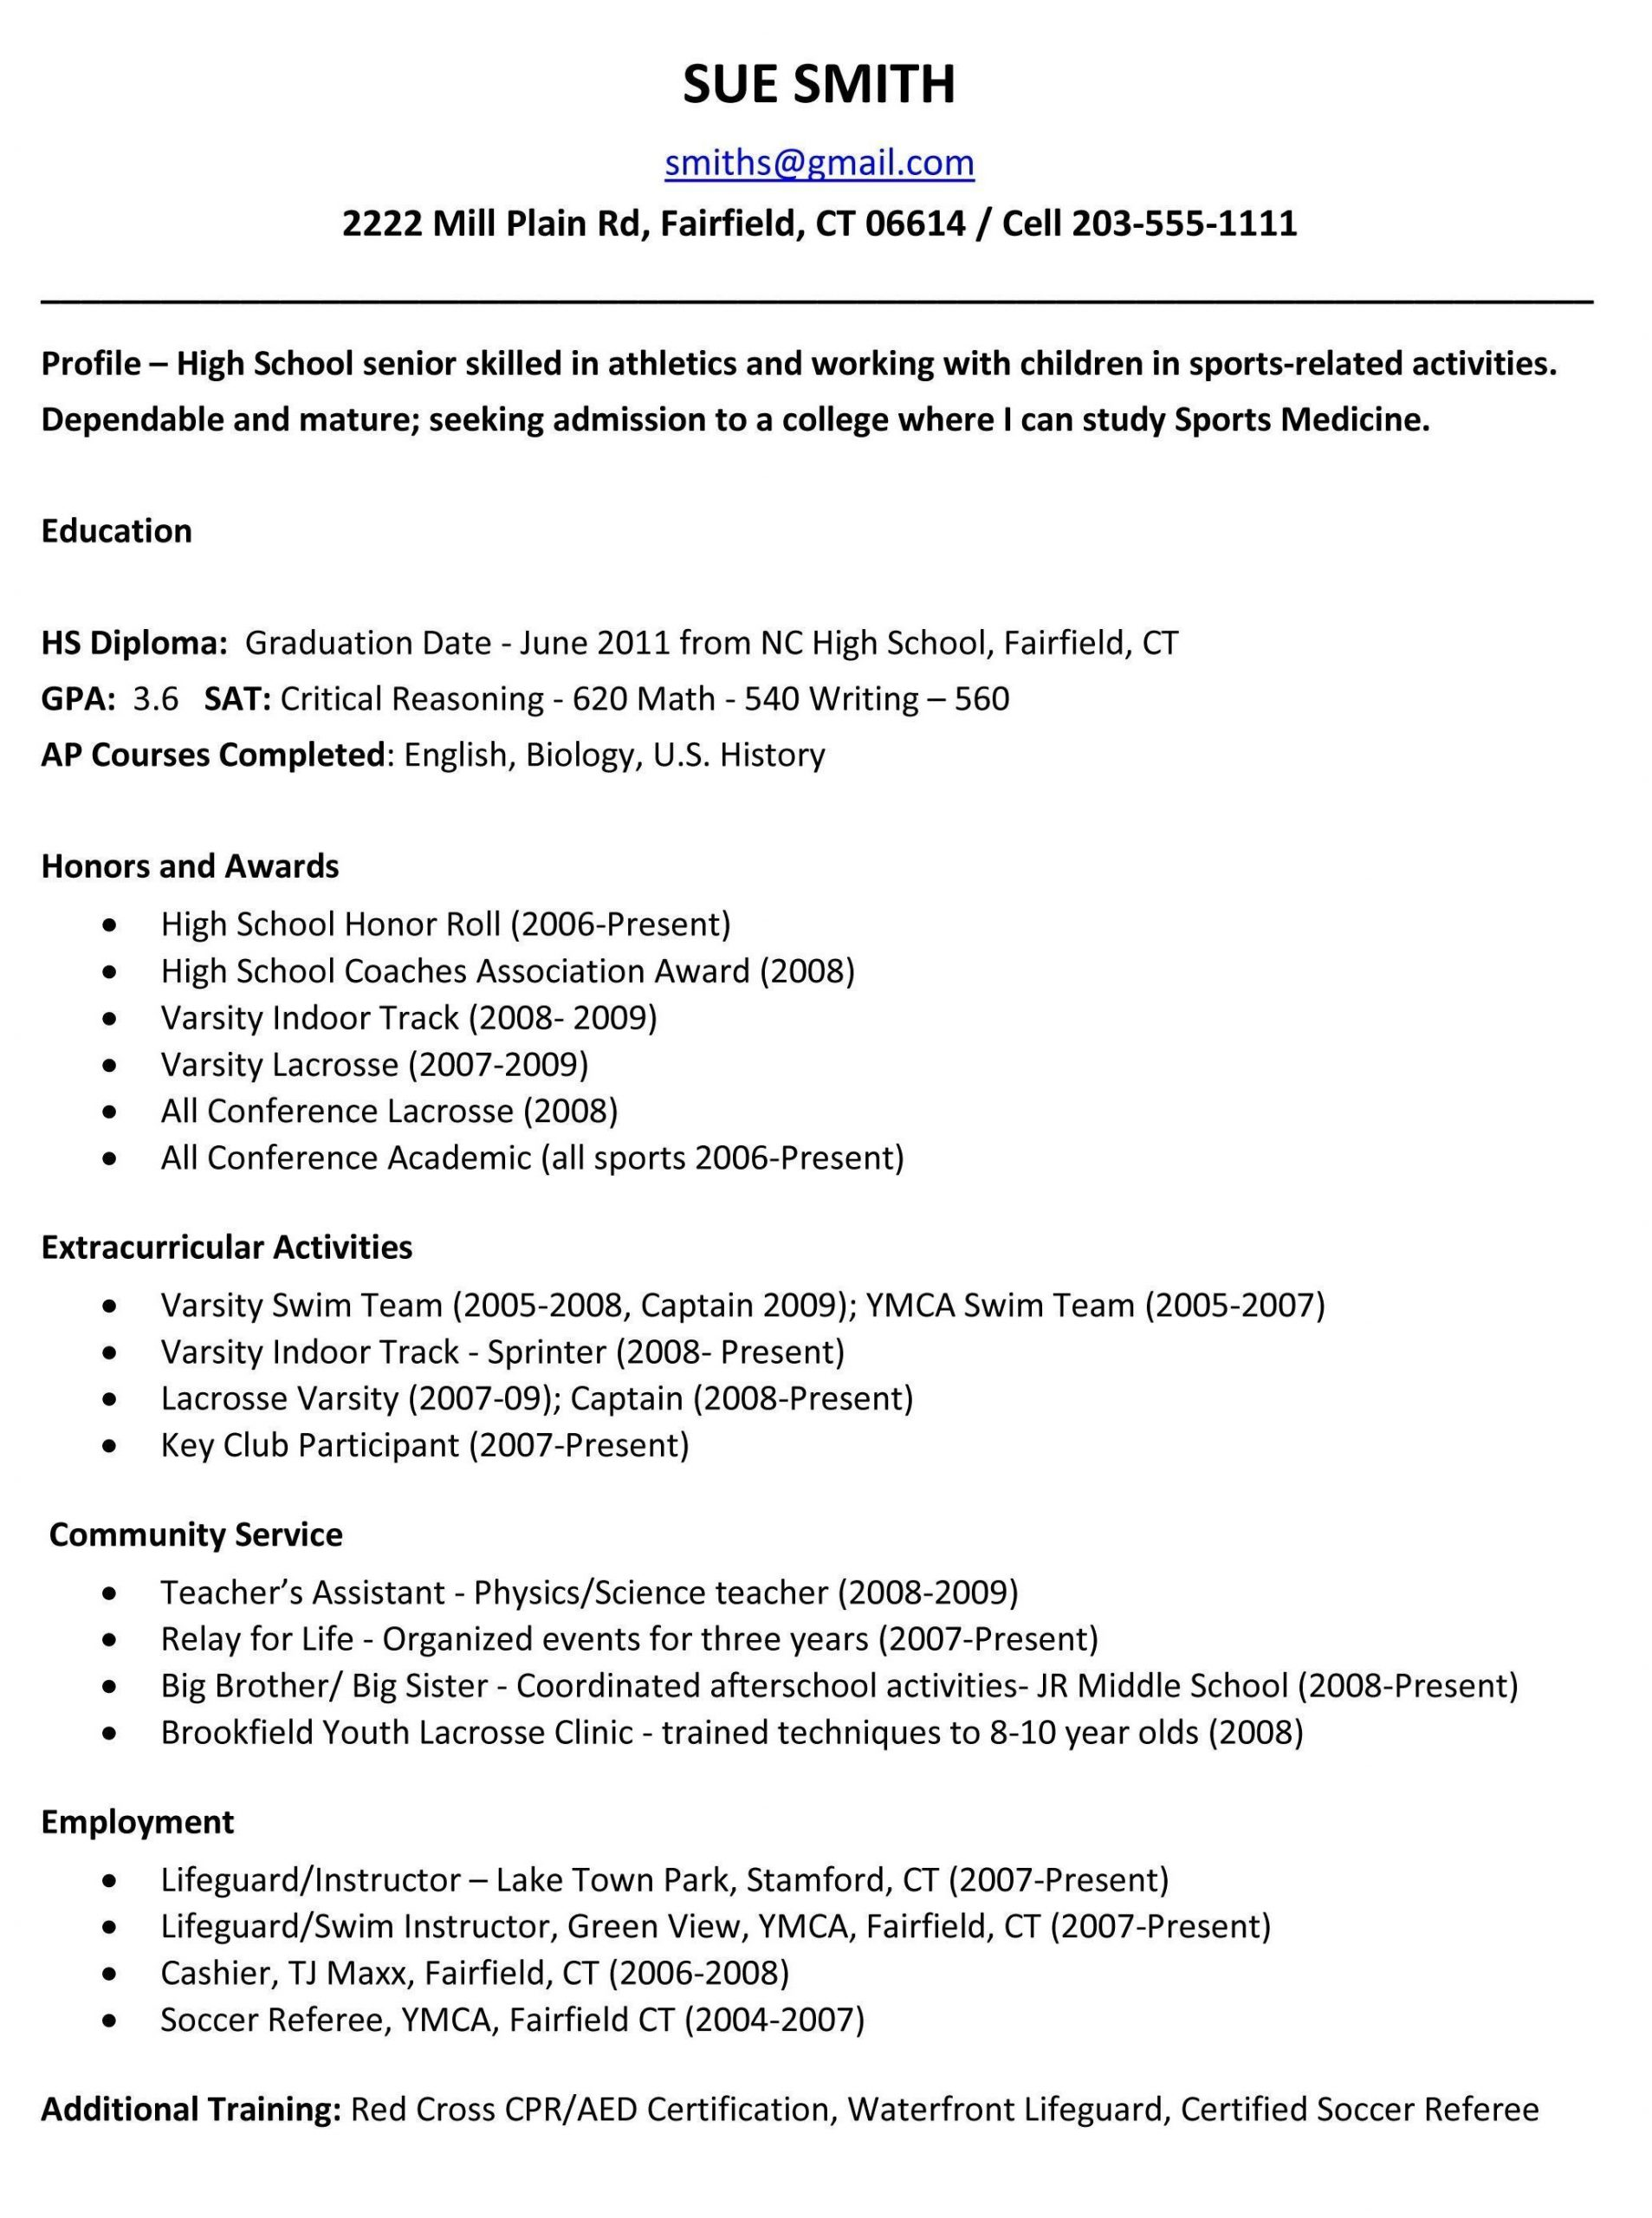 College Students Resume Samples High Quality Example Resume for High School Students for Coll